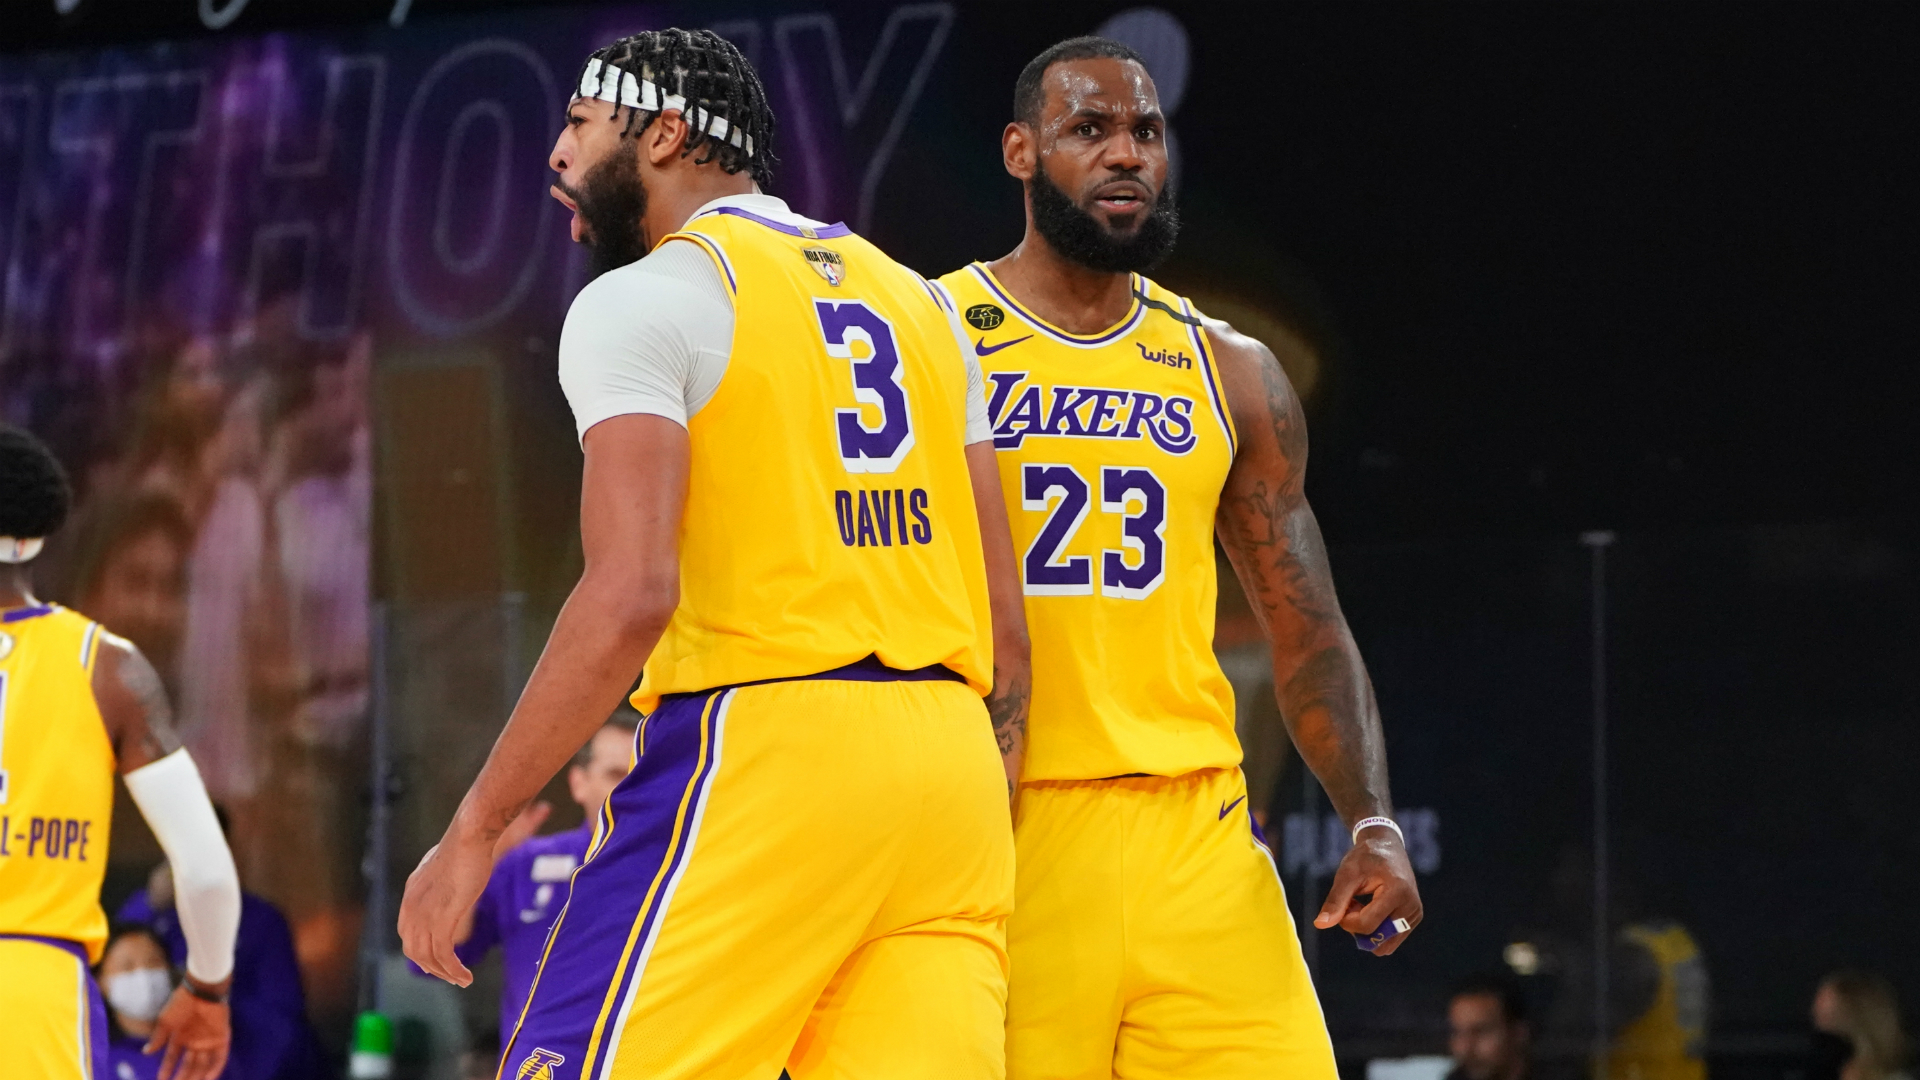 Lakers are lucky to have LeBron and Davis – Vogel